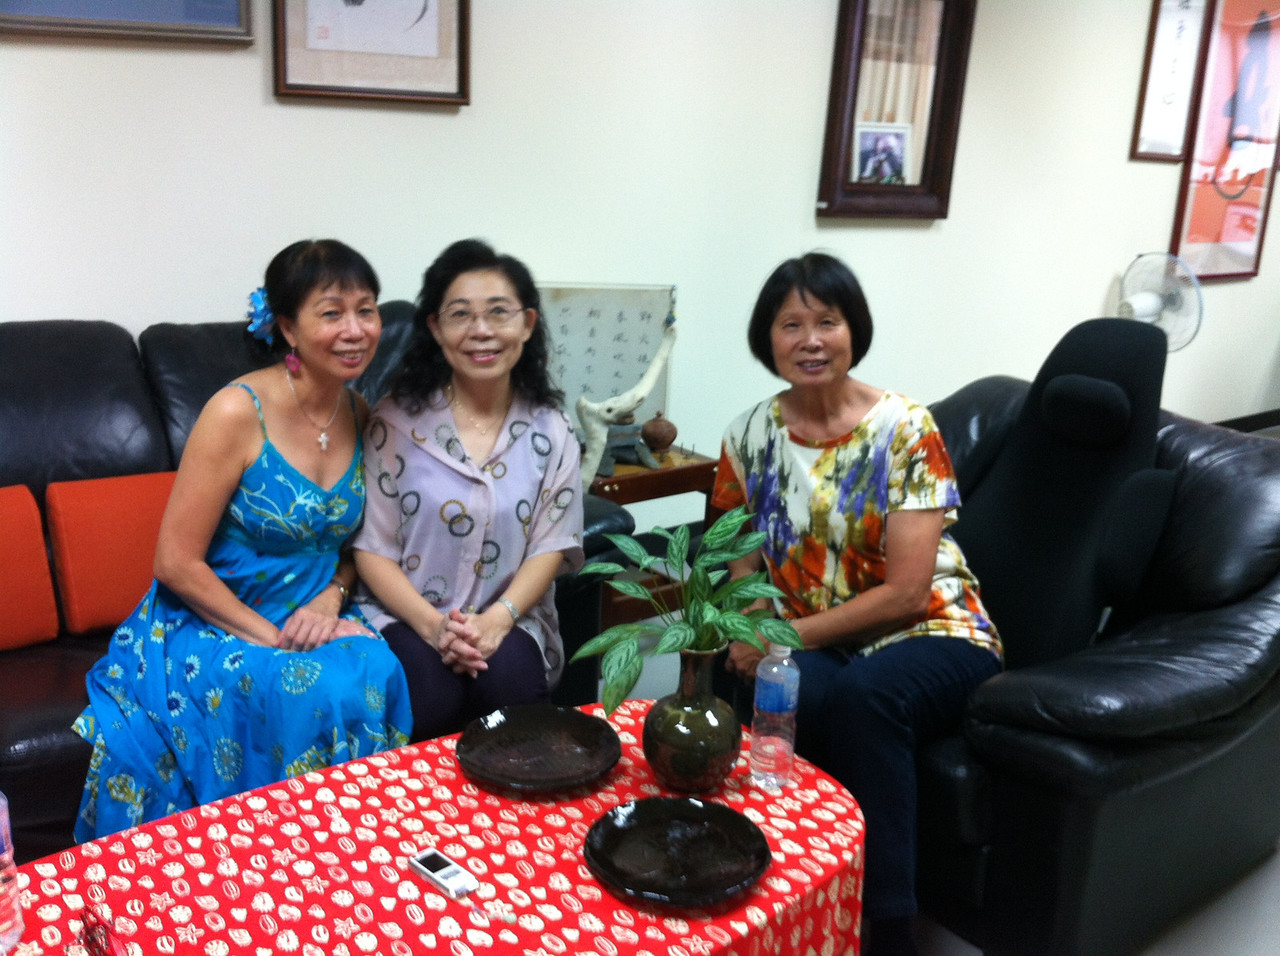 SJ - Hui Zhen - #2 sister... all 3 of us looked great!